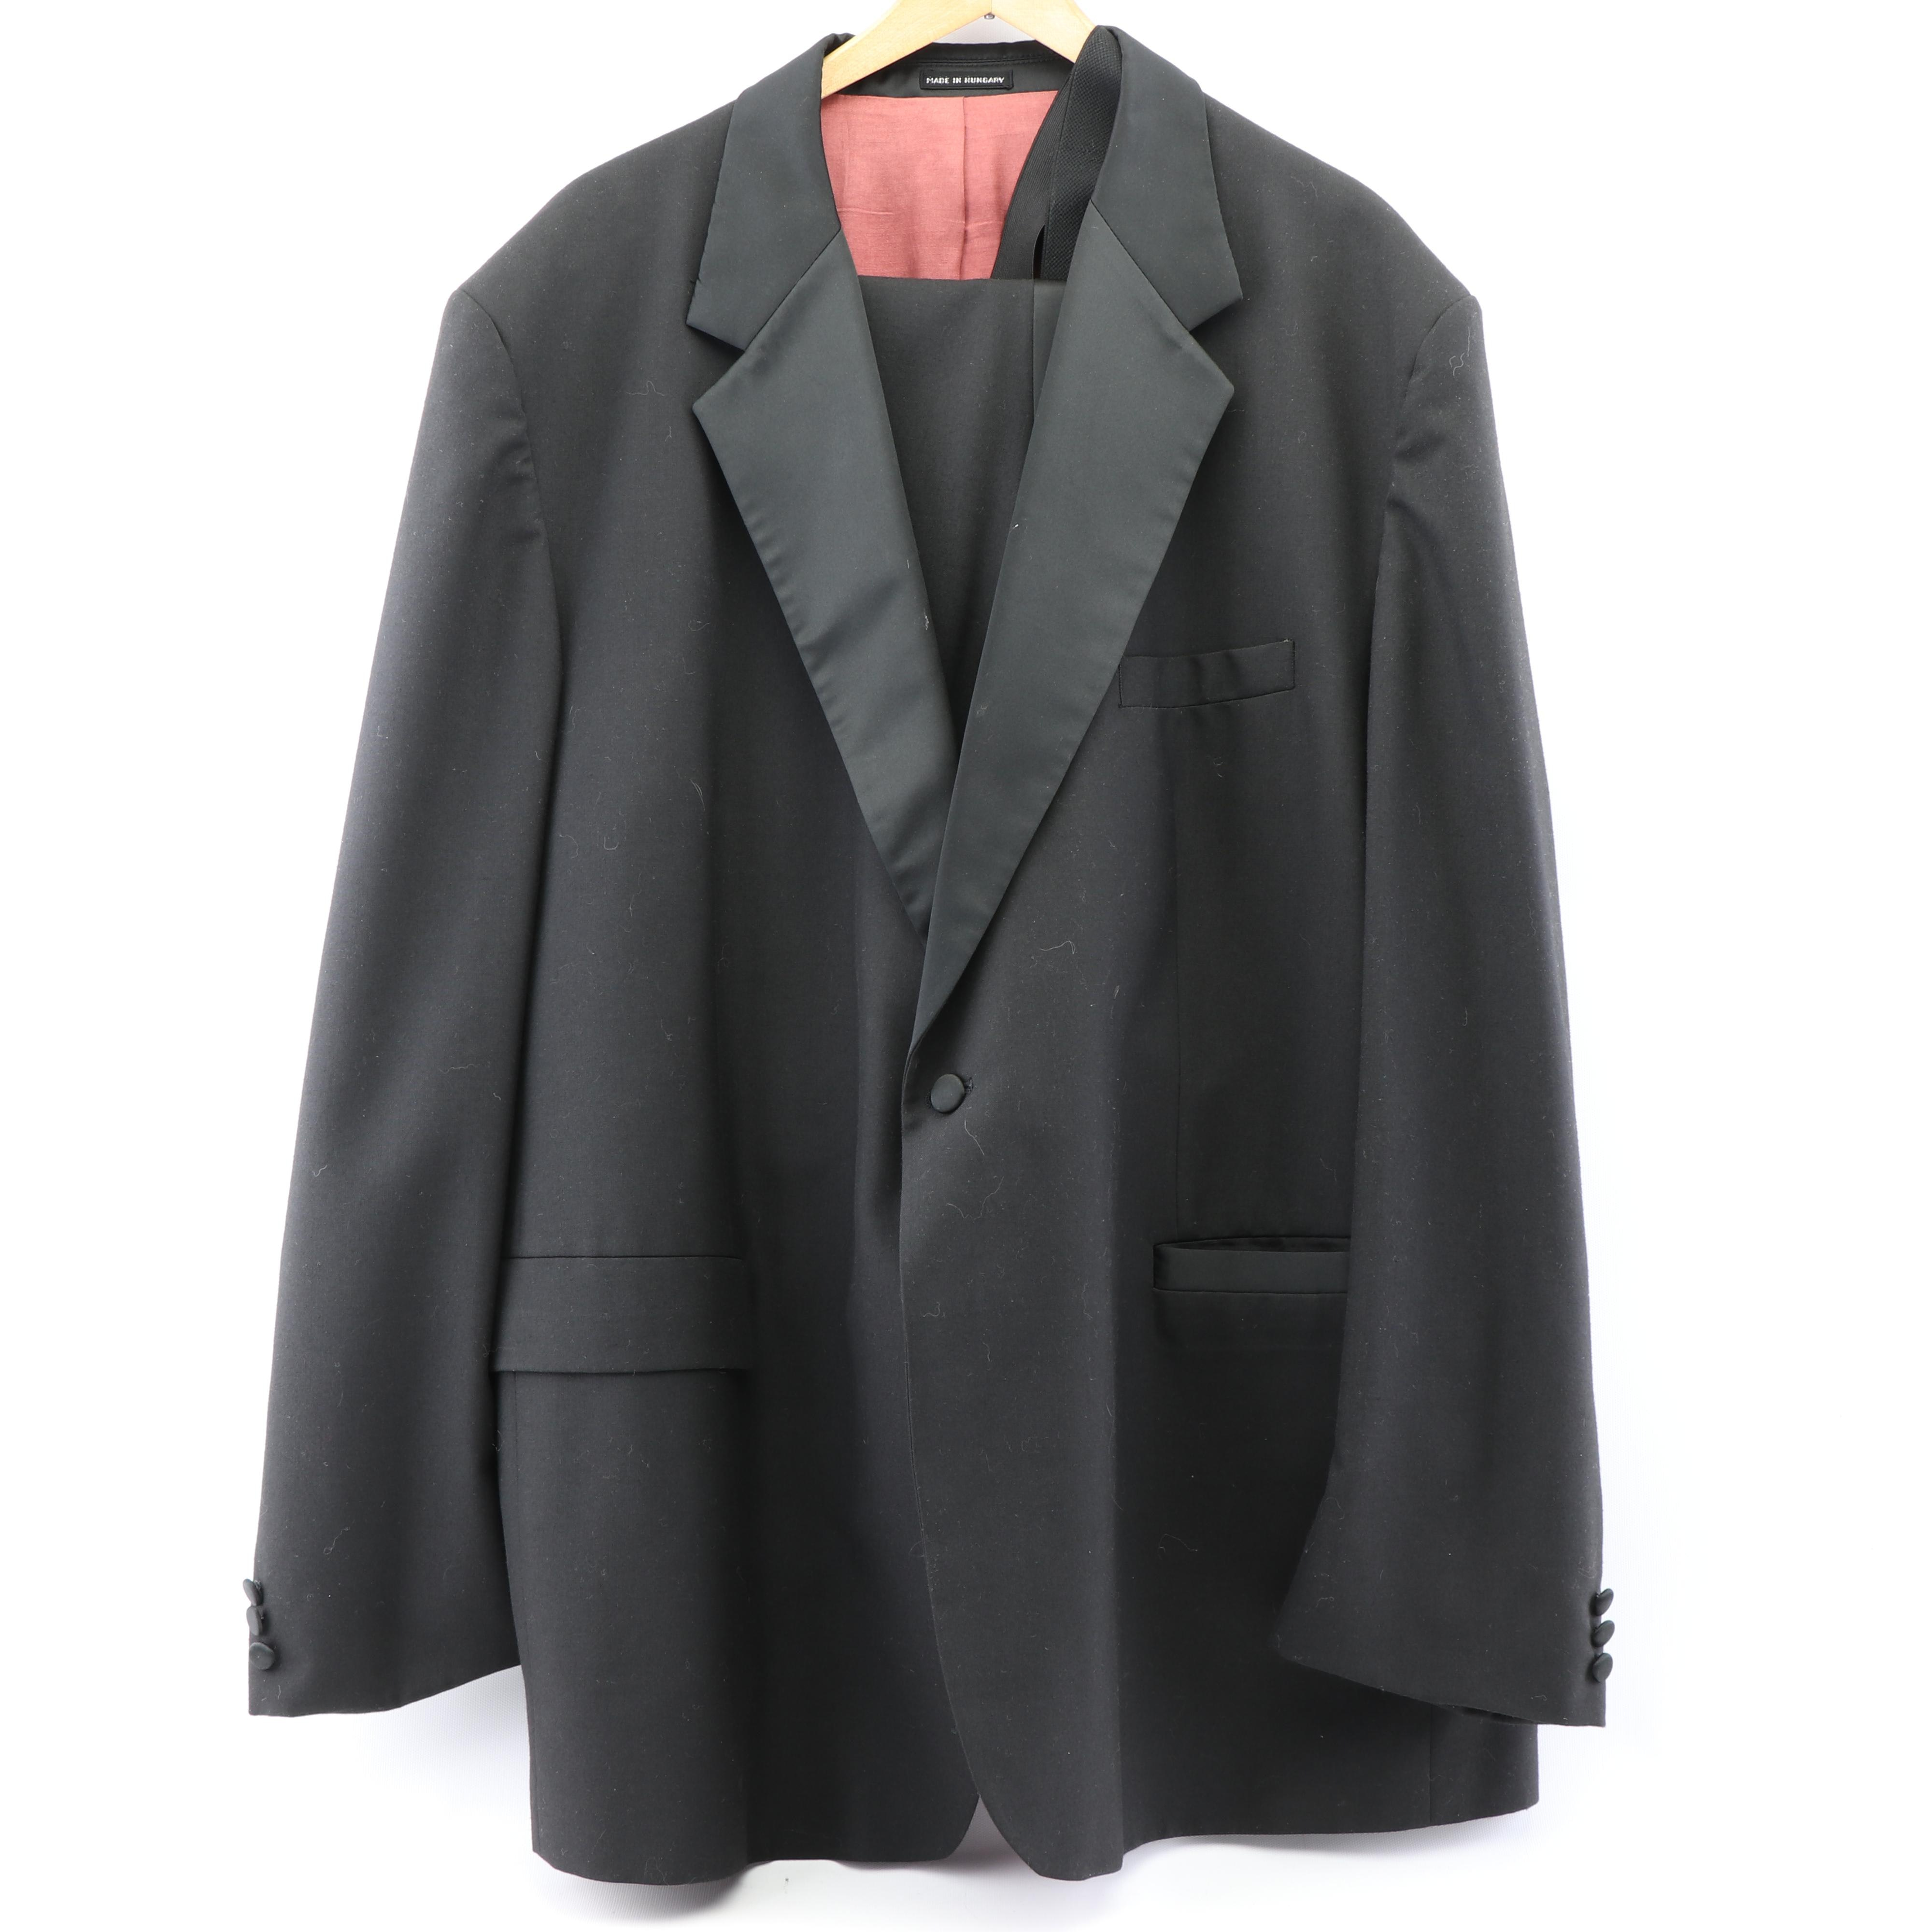 Vintage Wool Blend Tuxedo, Made in Hungary